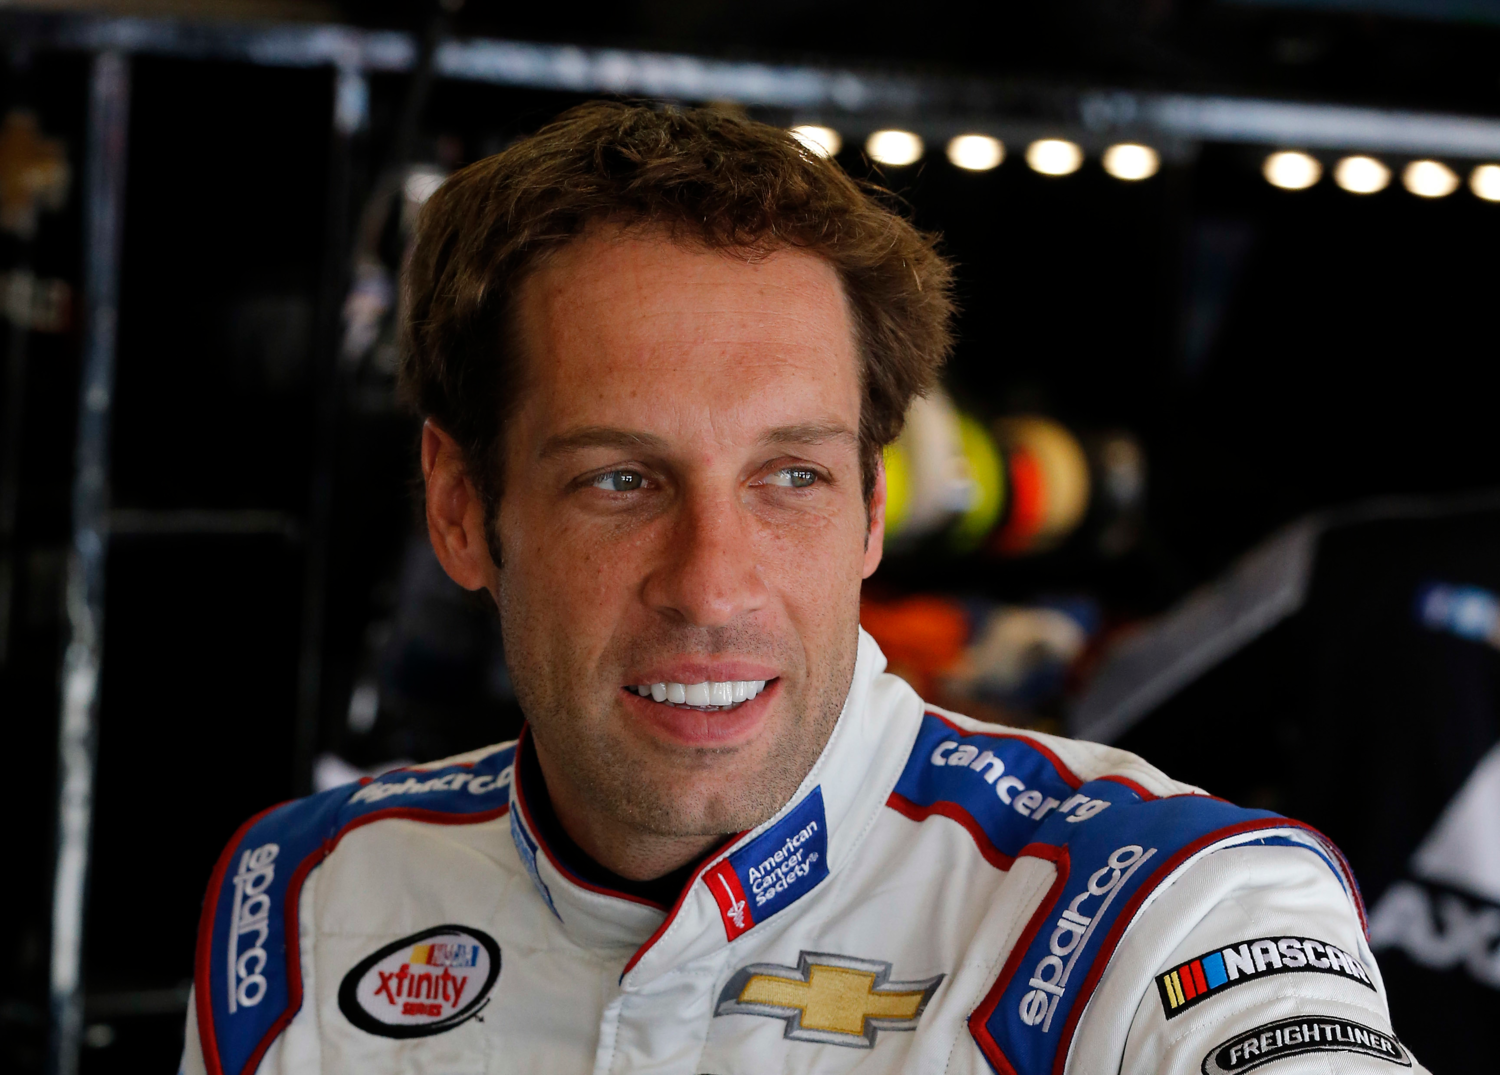 SCOTT LAGASSE TO DRIVE FOR JD MOTORSPORTS IN THE NO. 4 AT DAYTONA